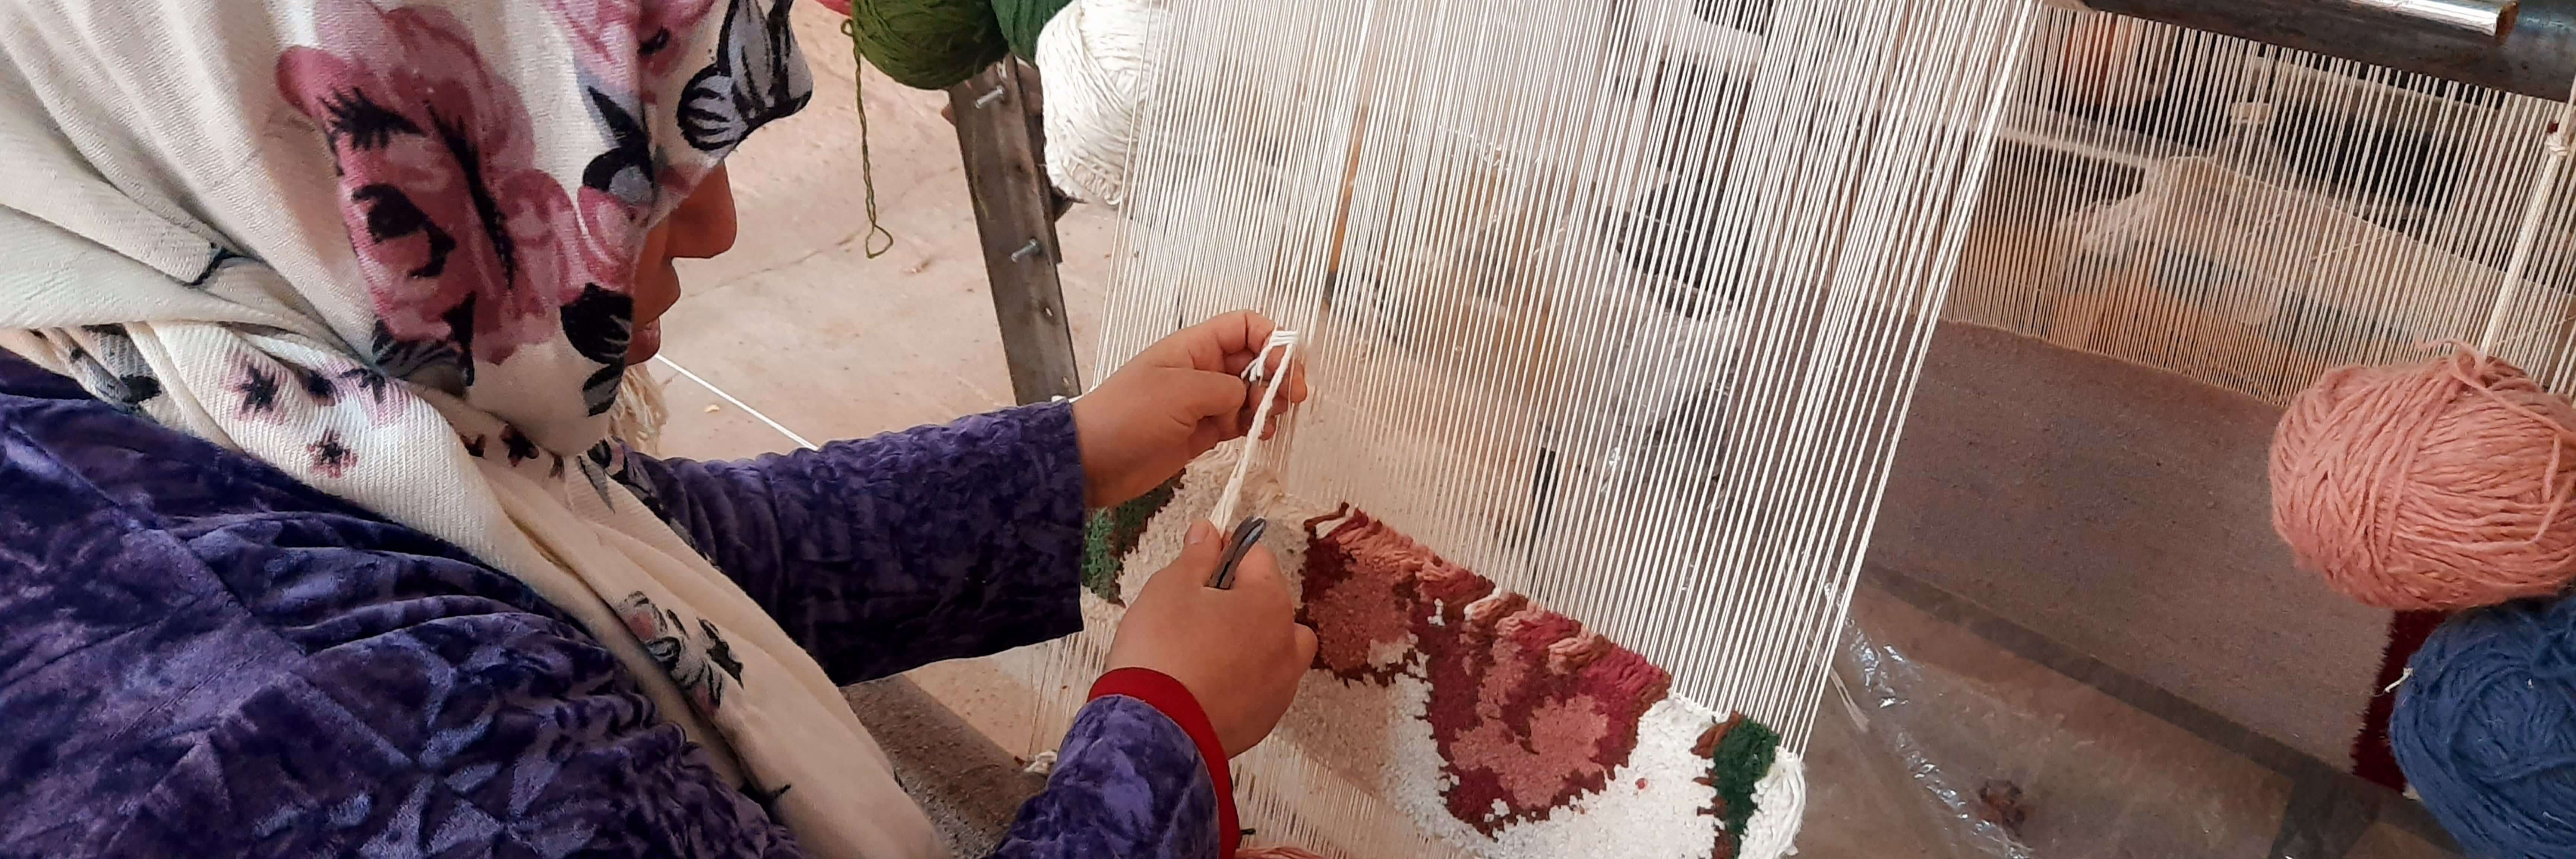 Importance of fair trade in handicrafts sector